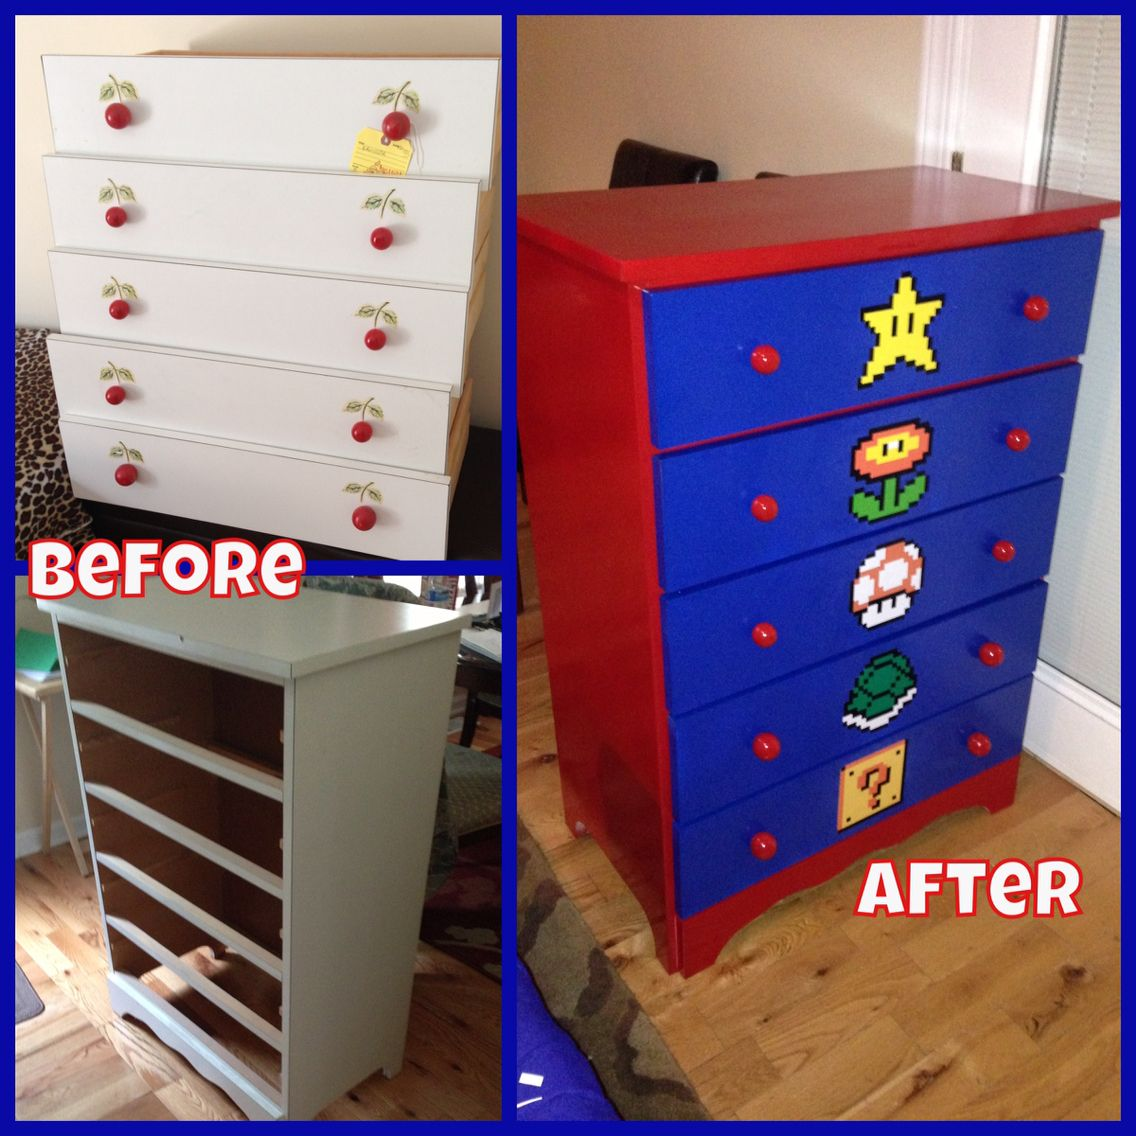 diy mario dresser kinderzimmer mario zimmer kinderzimmer ideen und kinderzimmer gestalten. Black Bedroom Furniture Sets. Home Design Ideas